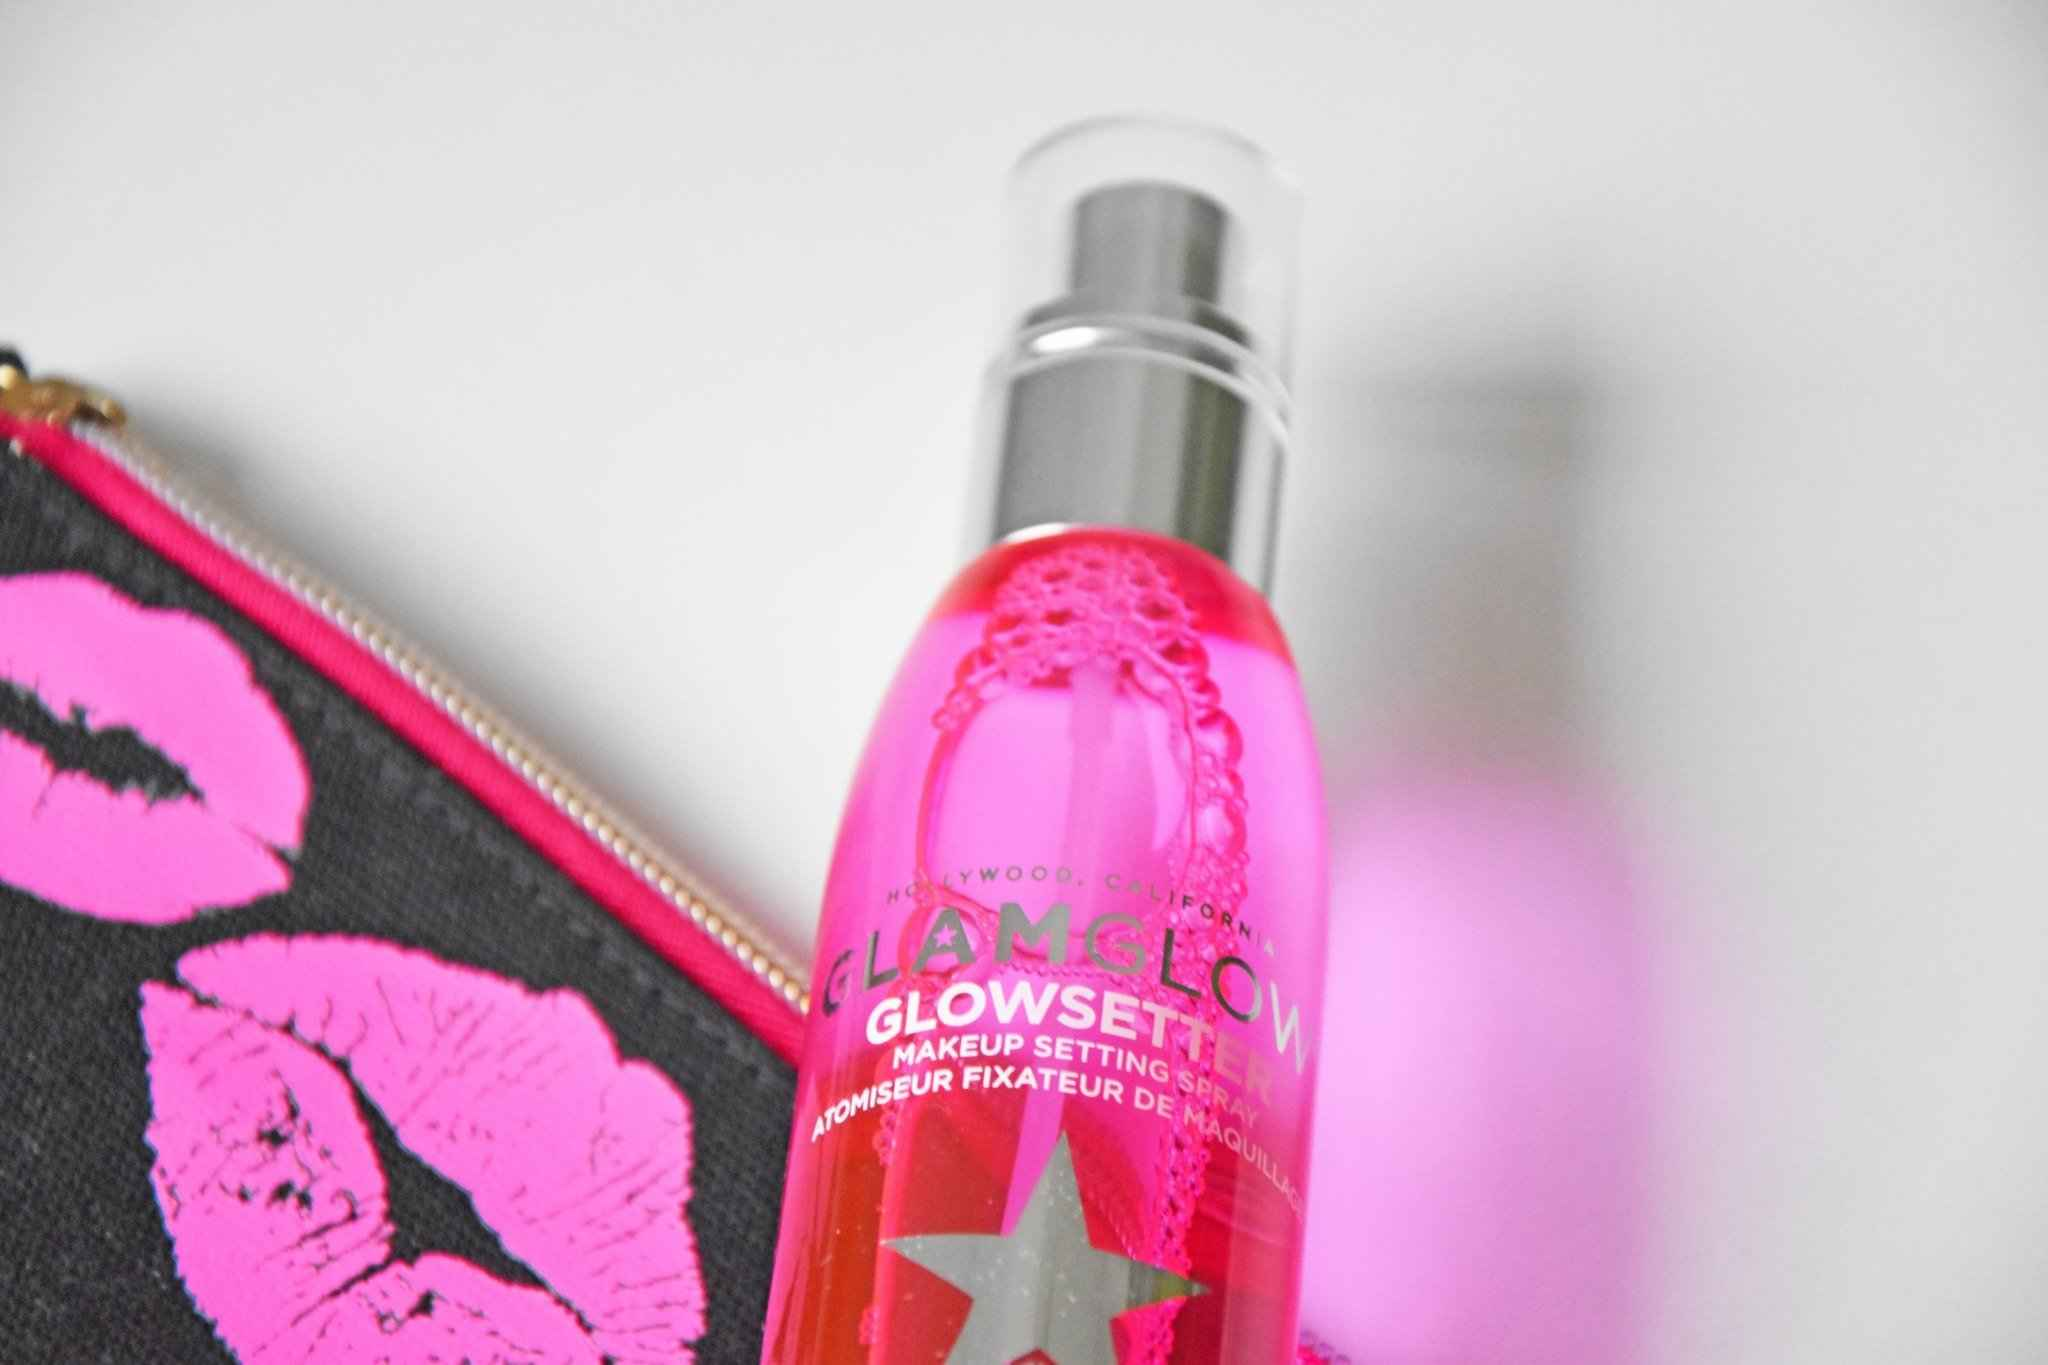 Glowsetter Makeup Setting Spray by glamglow #15